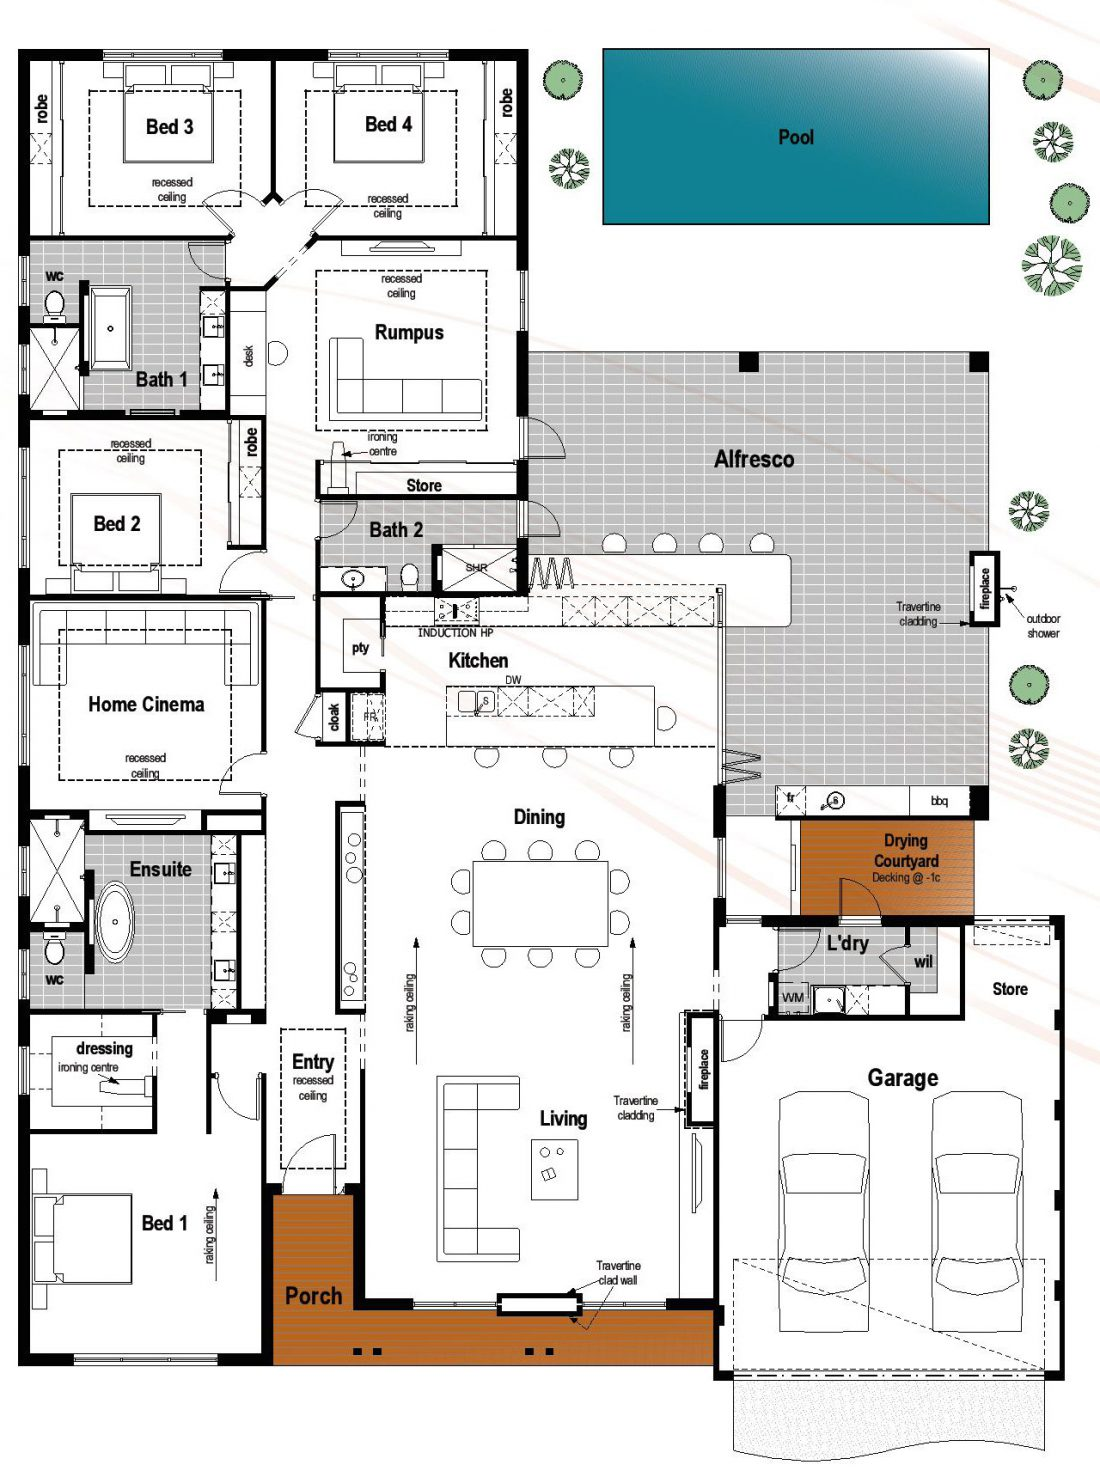 Floor plan friday 4 bedroom 3 bathroom with modern for House floor design